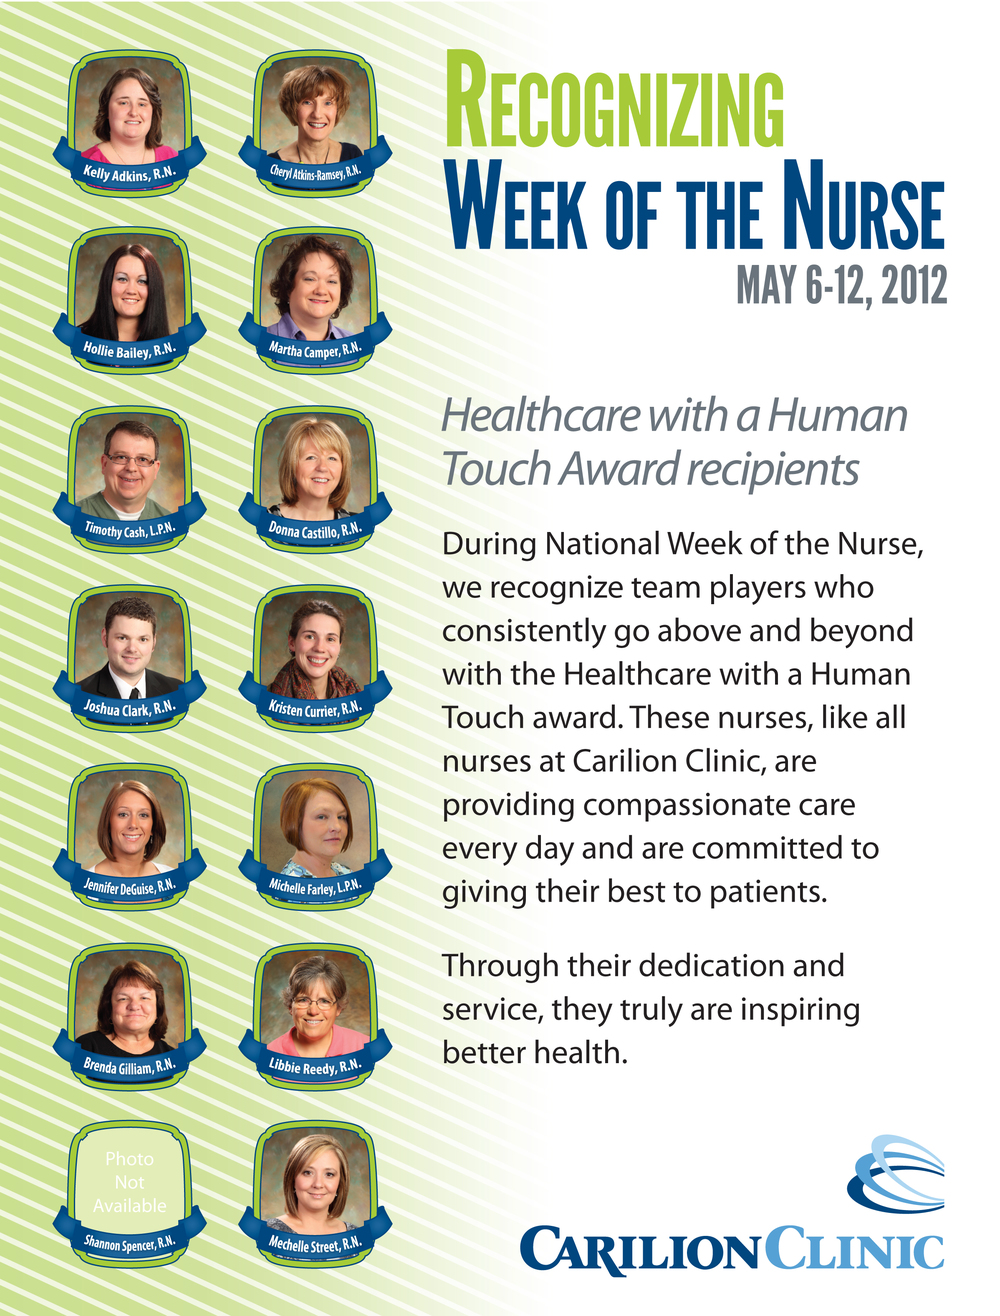 J950 Week of the Nurse 2012 flyer.jpg